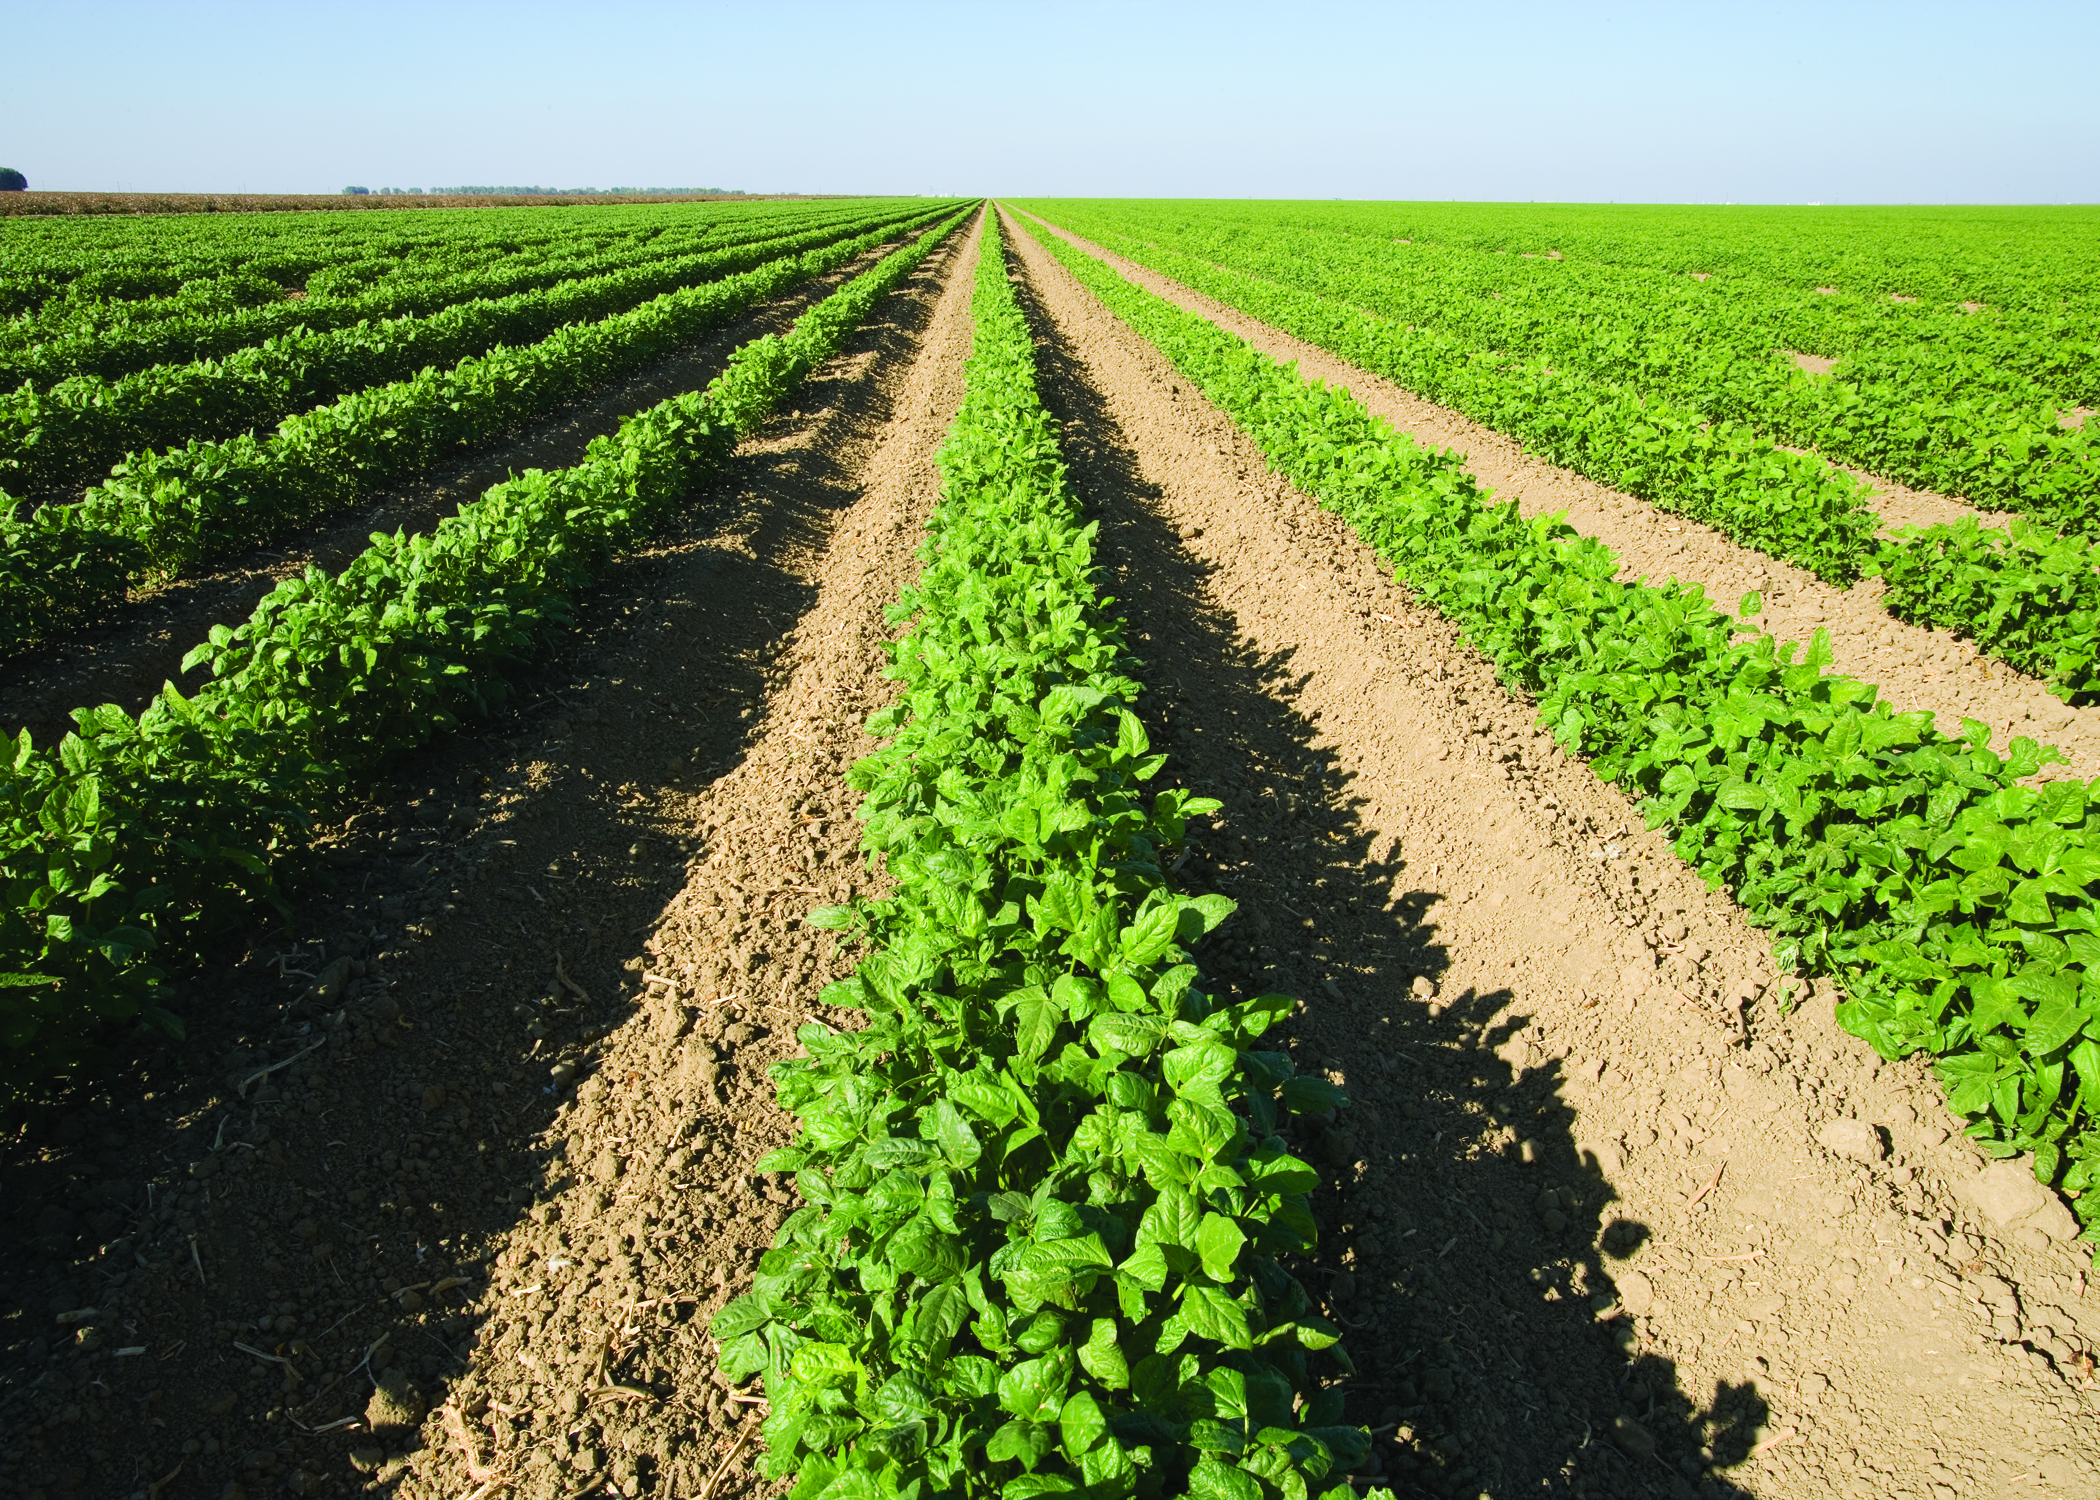 Row crops growing in California.